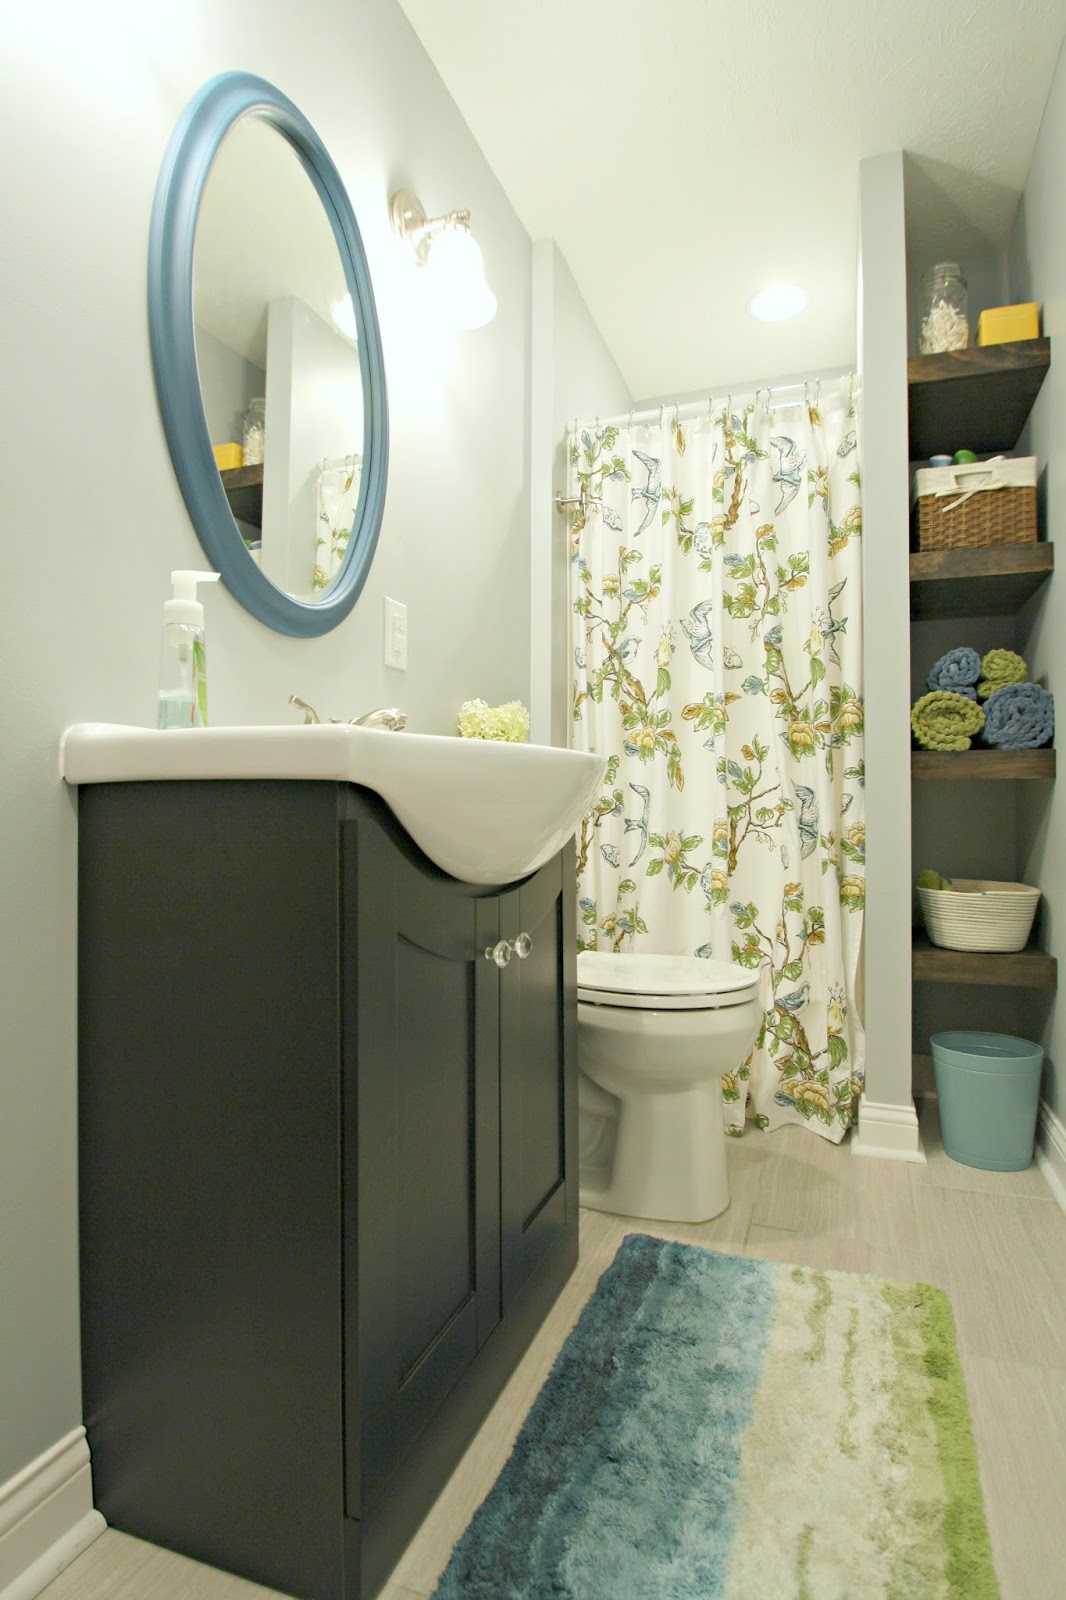 Bathroom renovation plans from thrifty decor chick for Dark green bathroom accessories